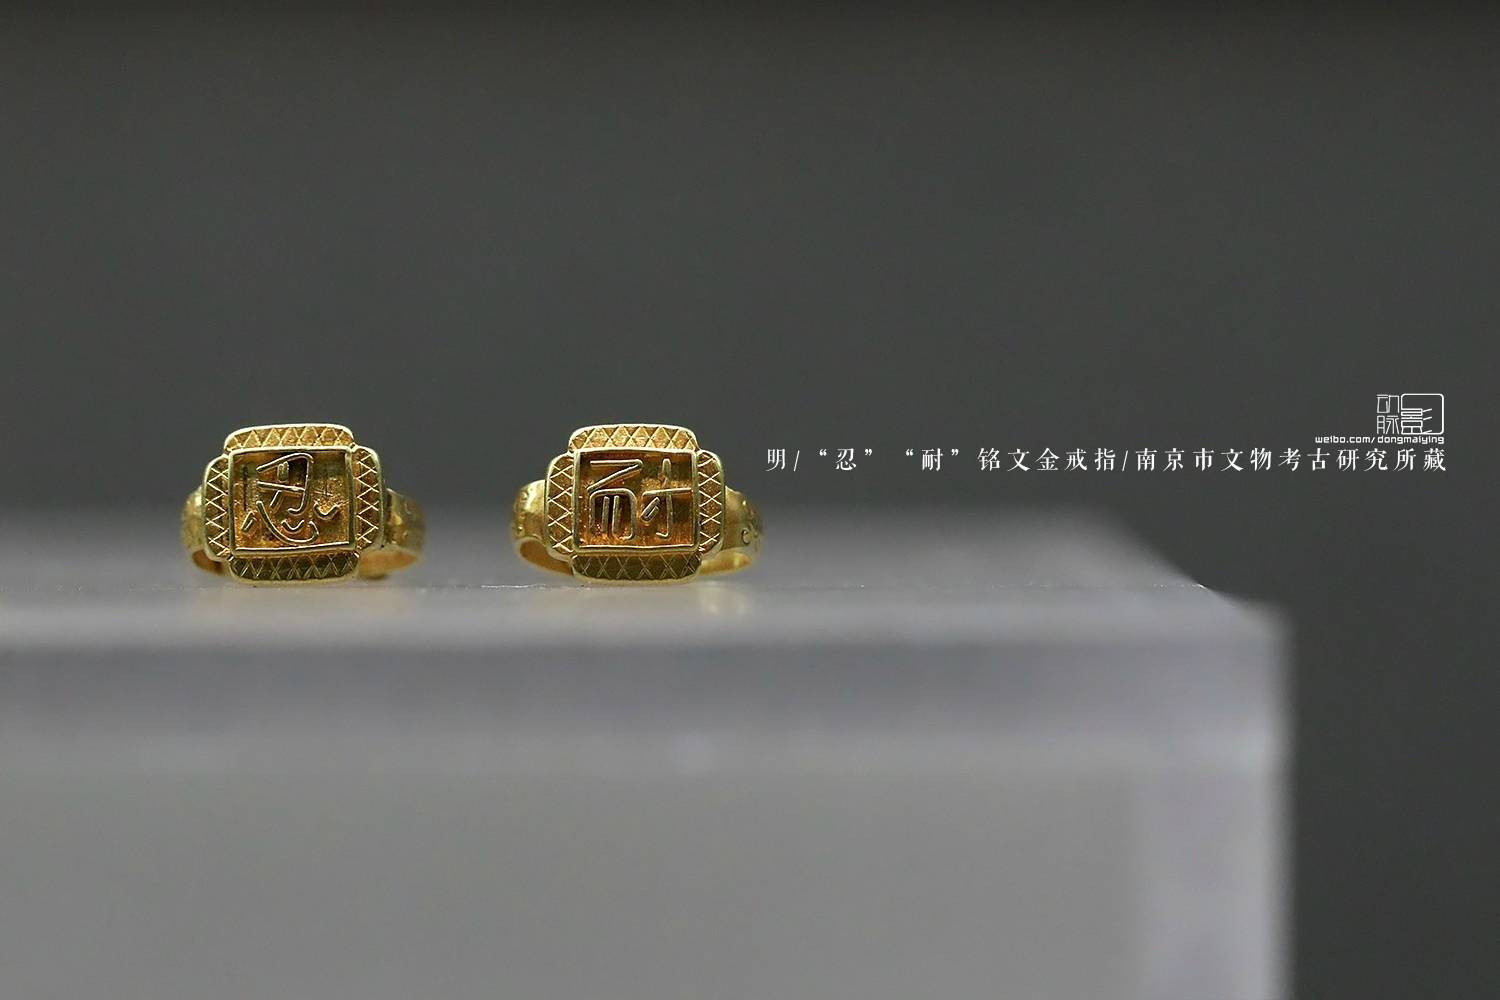 """Gold Ring with Inscription """"Patience"""" of the Ming Dynasty (1368 — 1644) — Nanjing Institute of Cultural Relics (Photo by Dongmaiying)"""